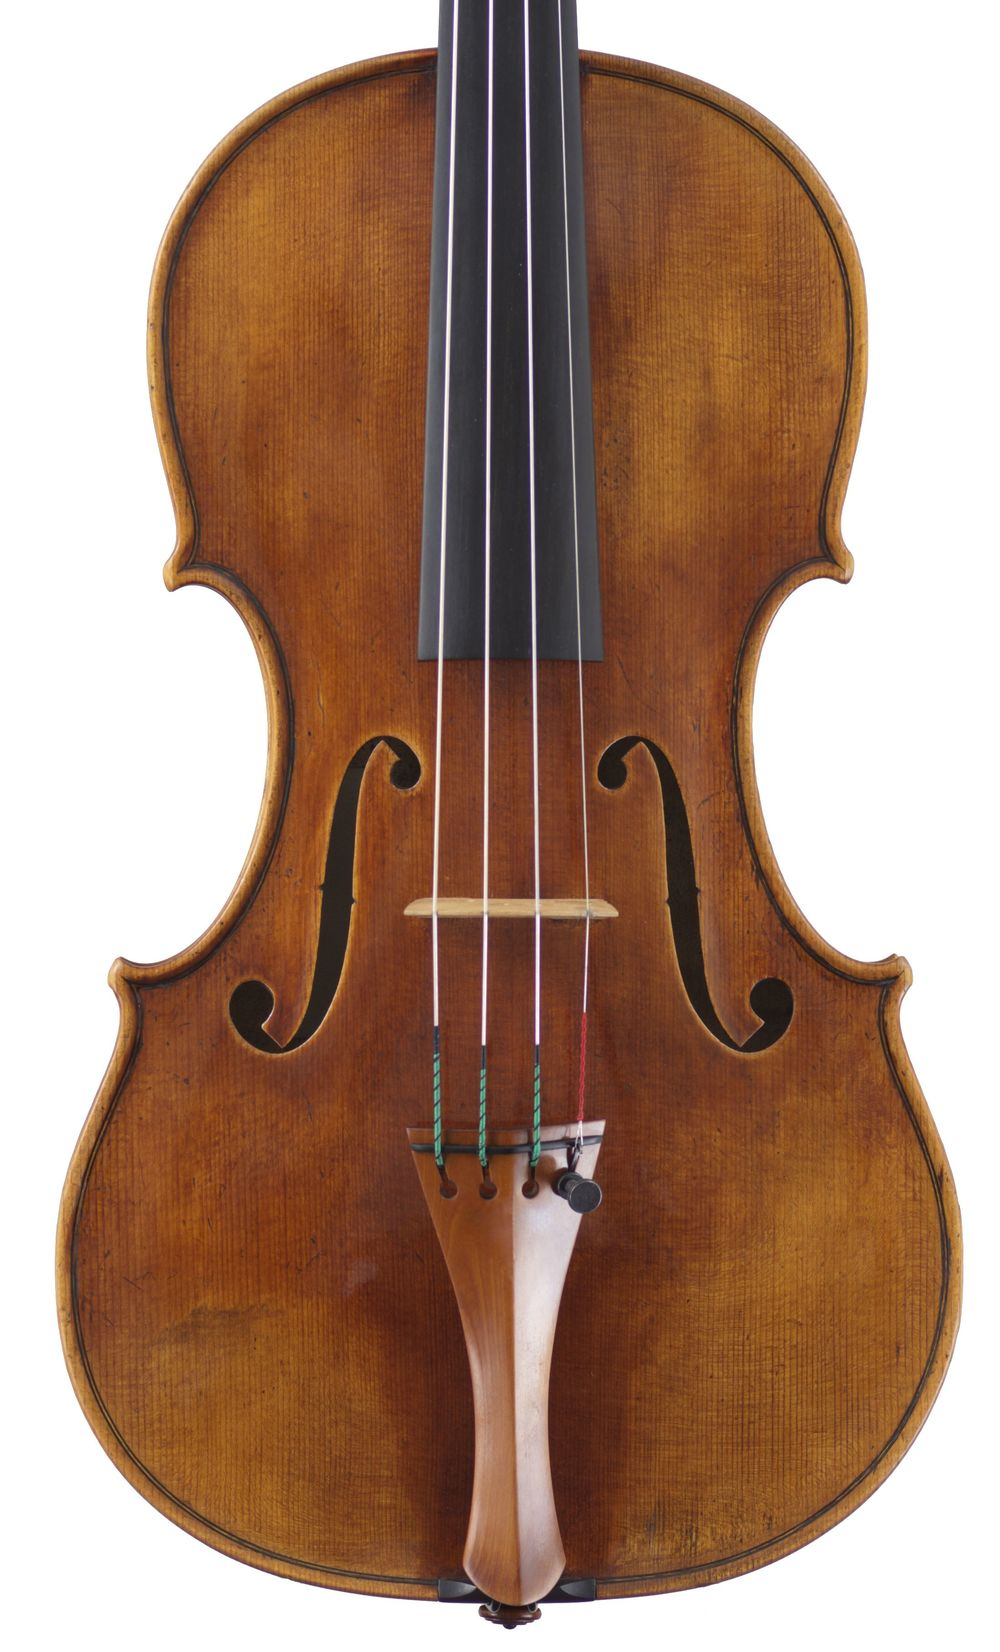 Paul Crowley DG violin top 2014.jpg